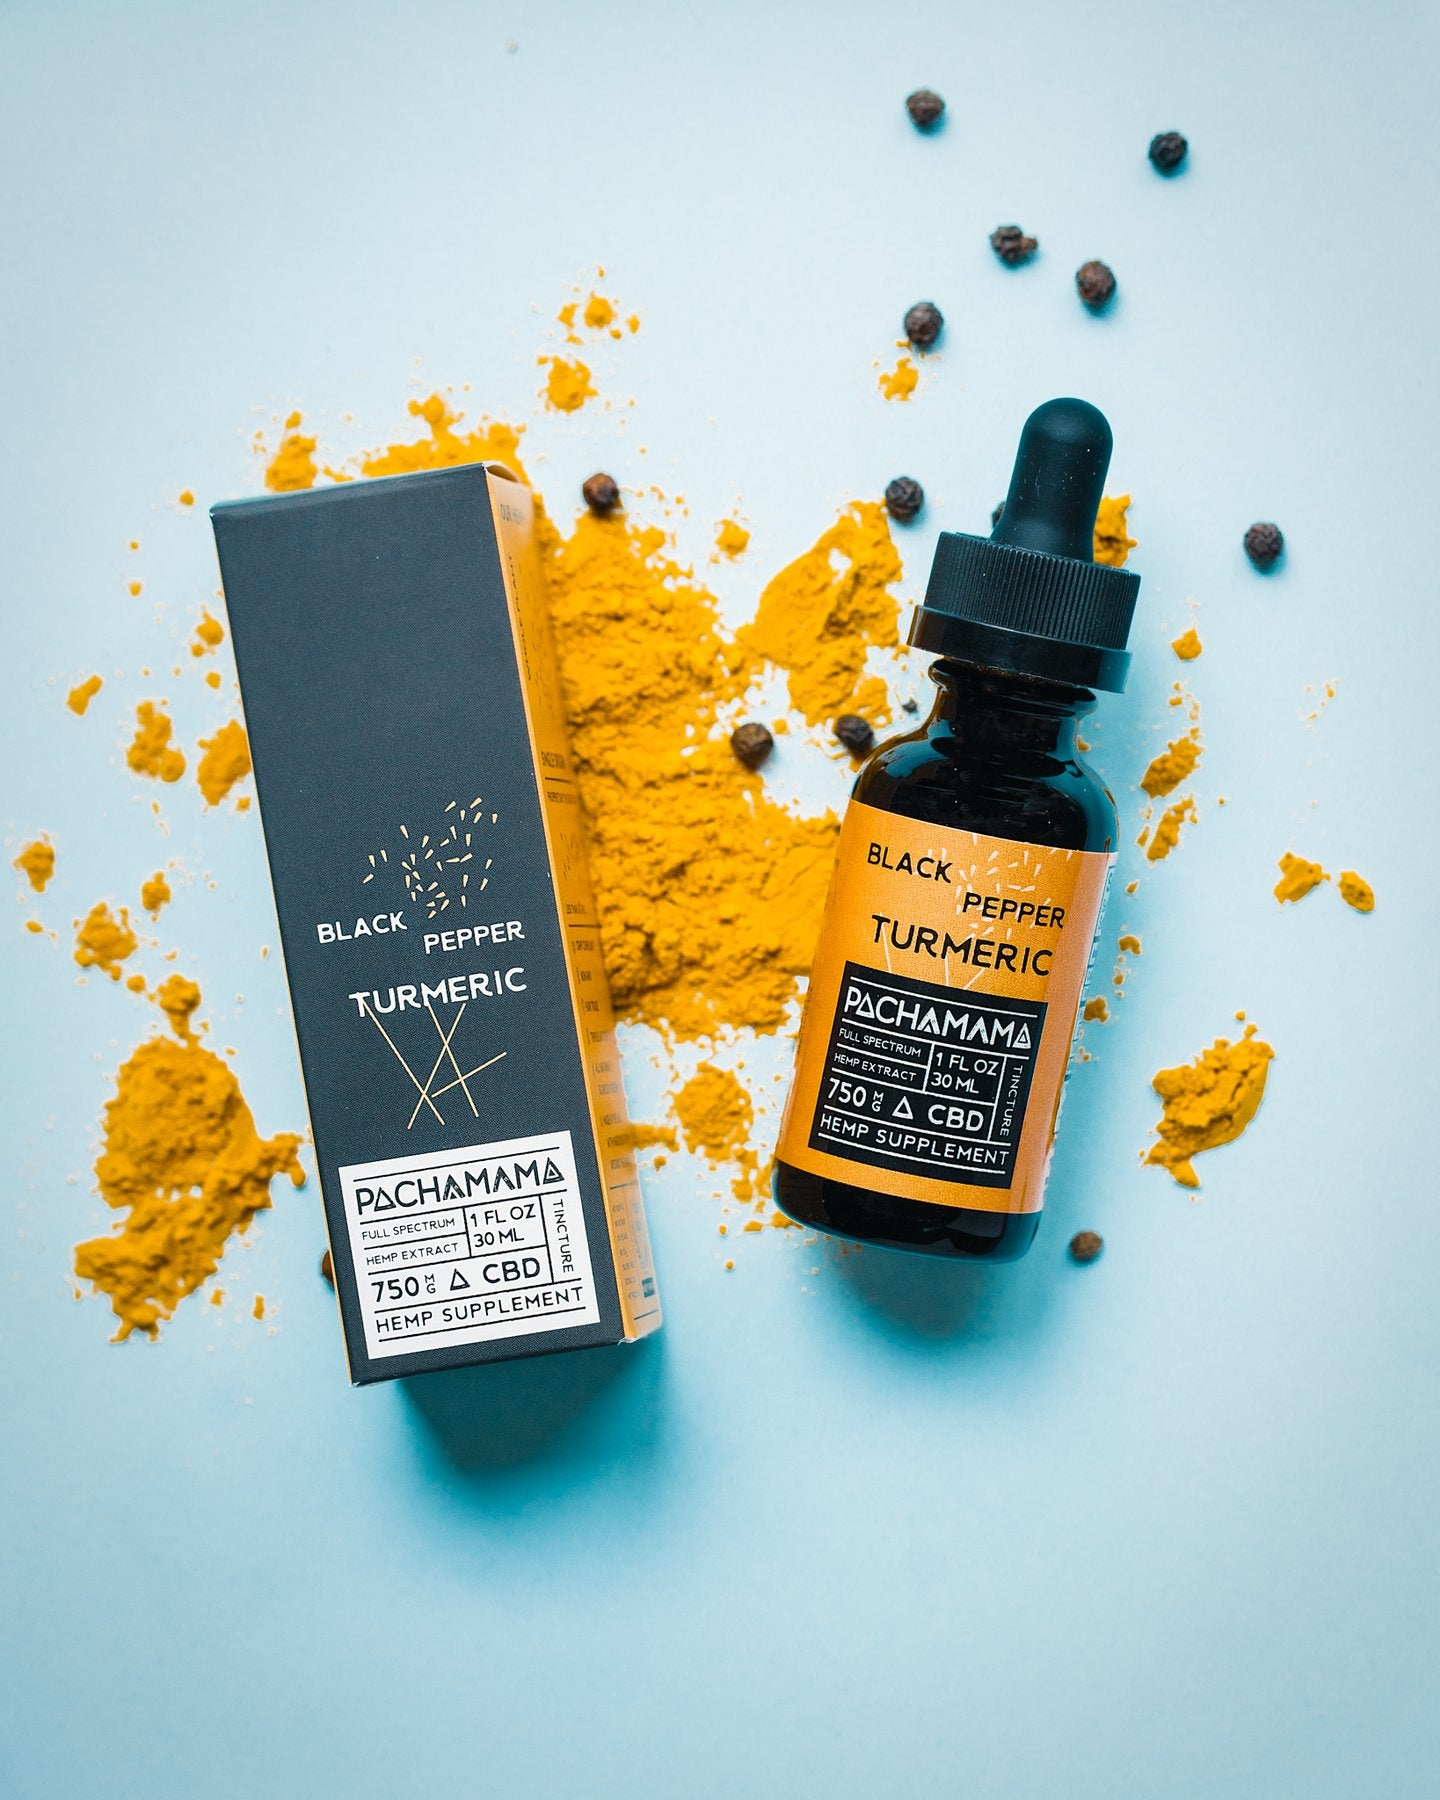 Black Pepper Turmeric CBD Tincture